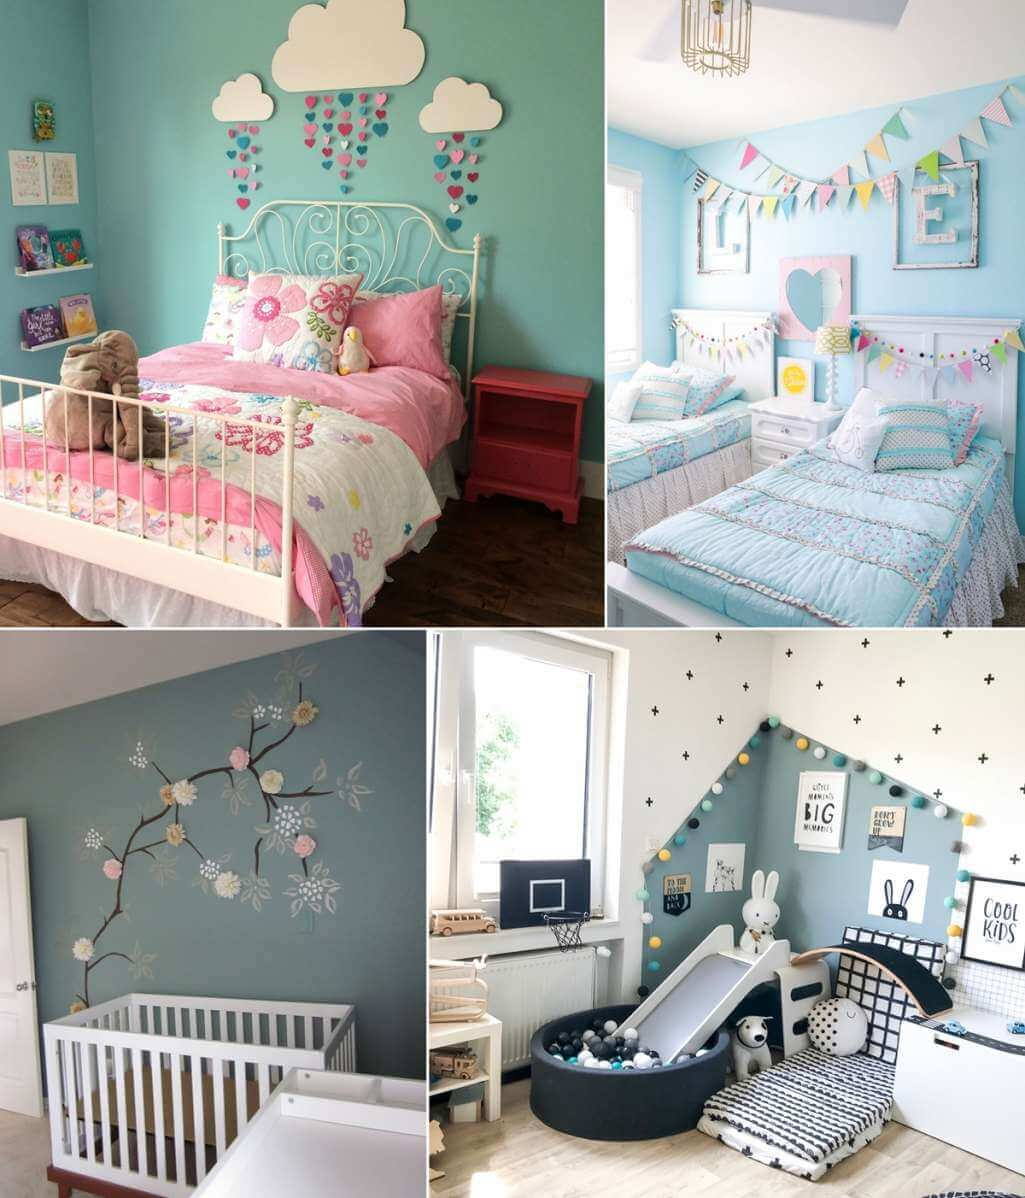 10 inexpensive kids room wall decor ideas - Cheap decorating ideas for bedroom walls ...